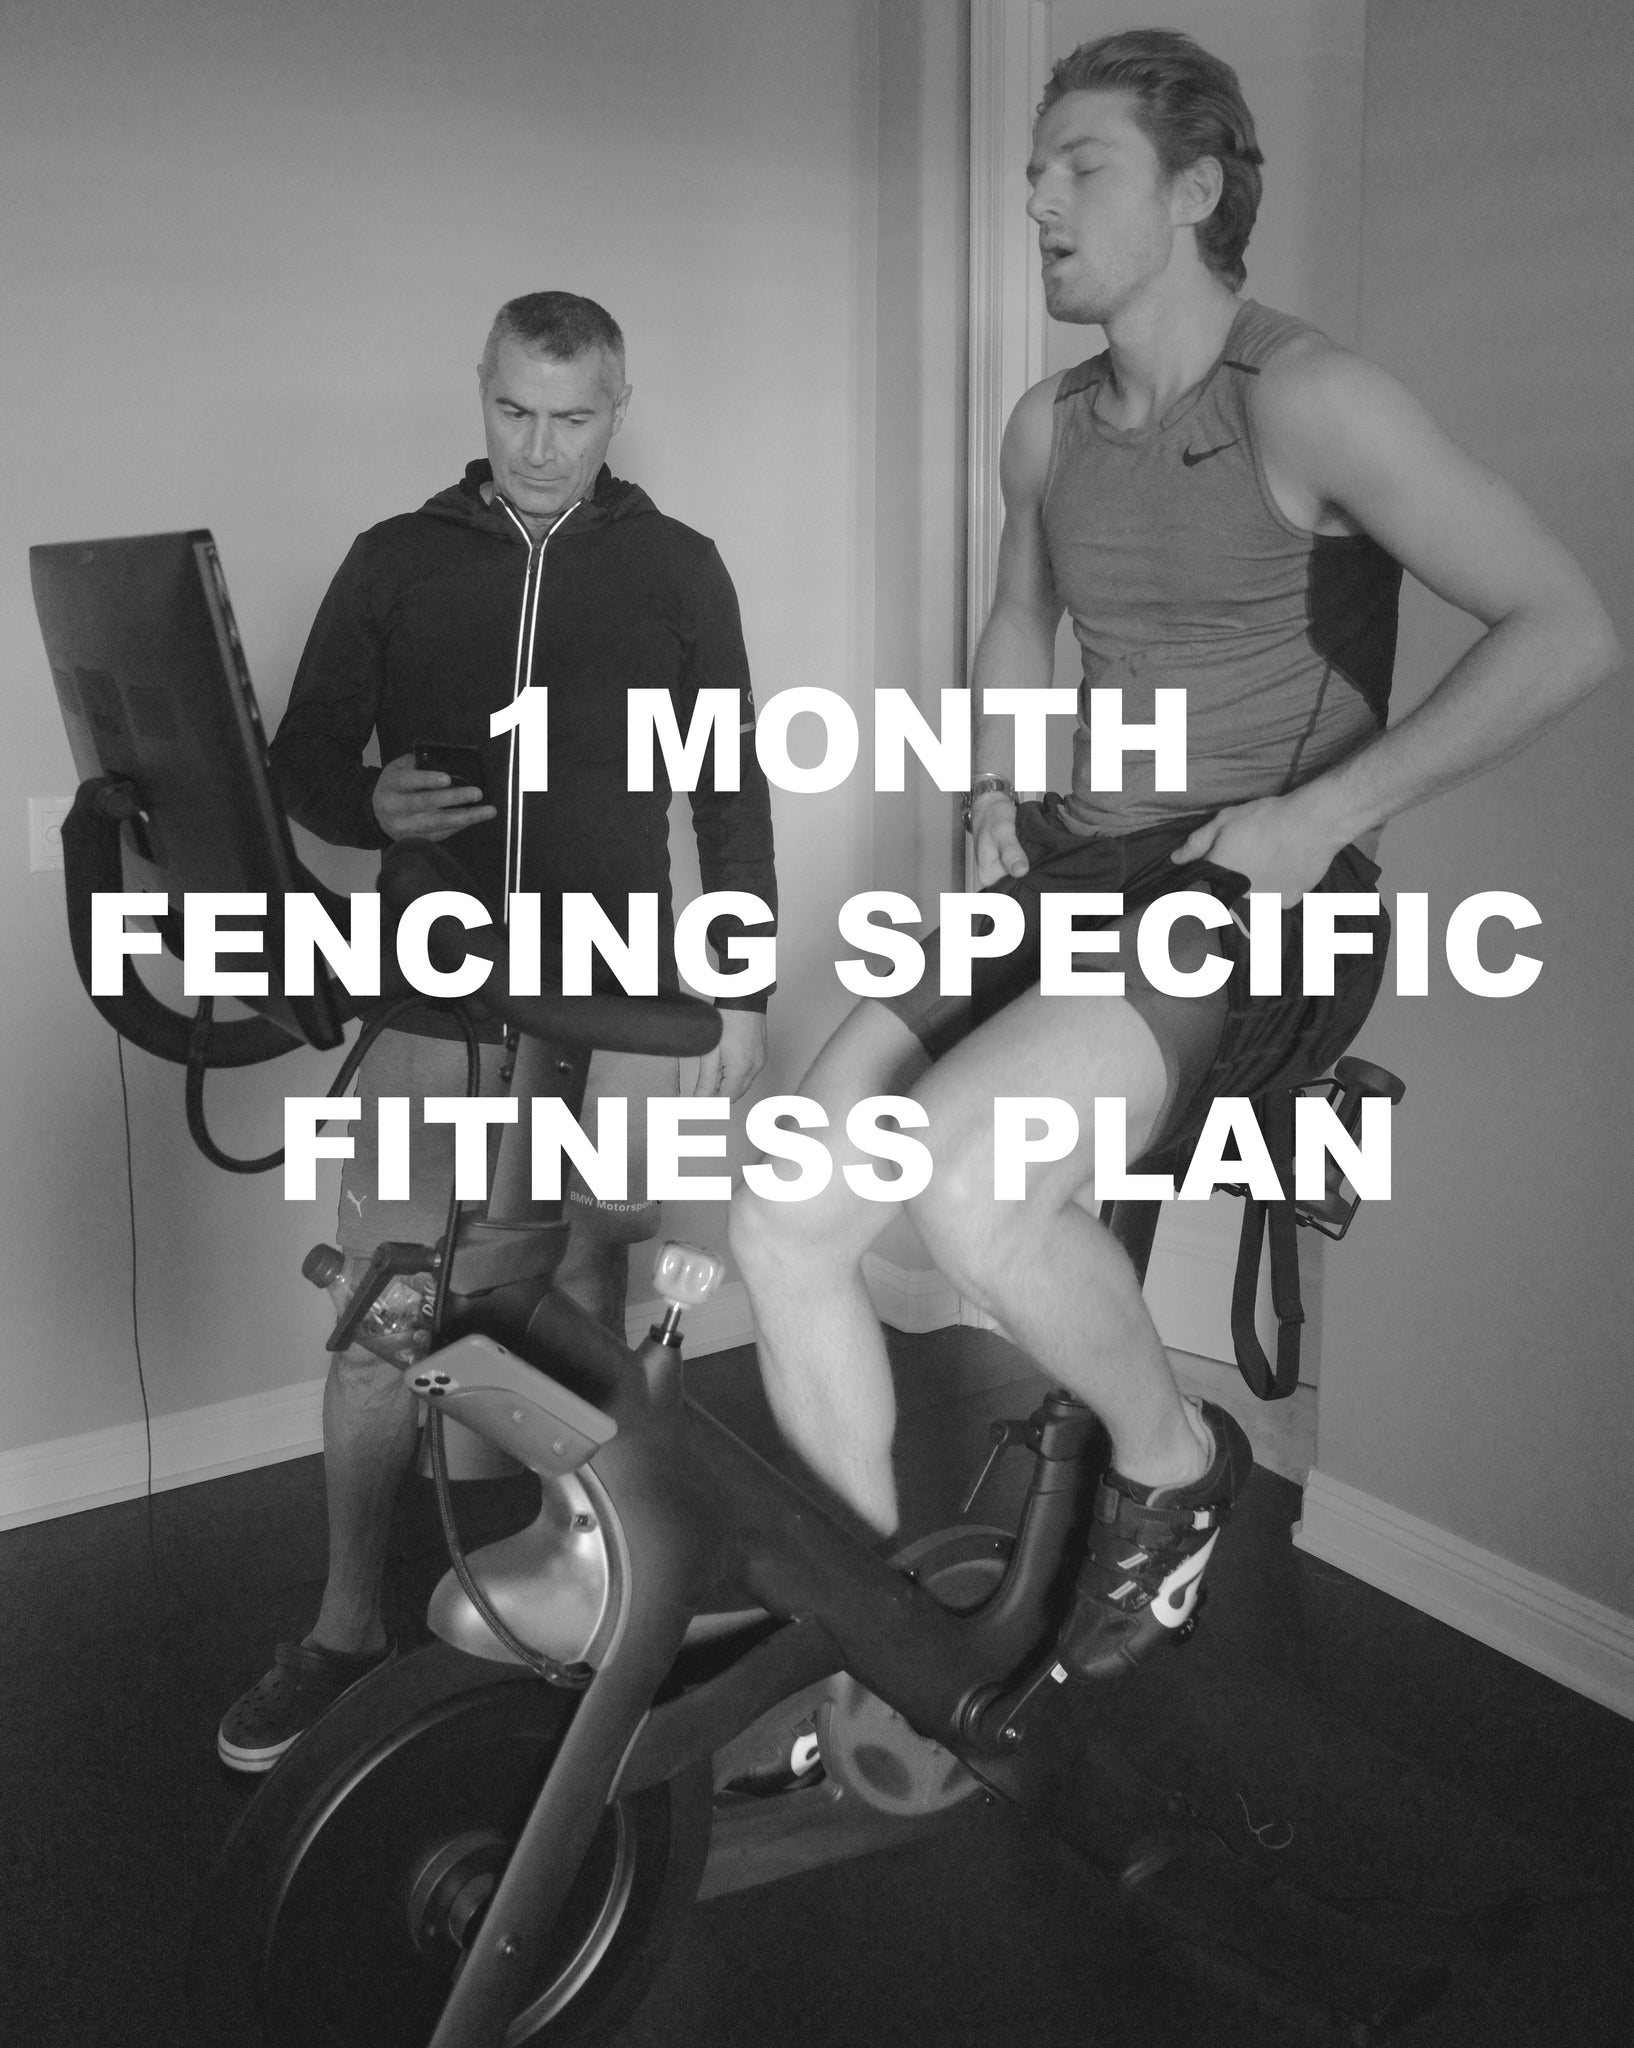 1 Month Fencing Specific Fitness Plan